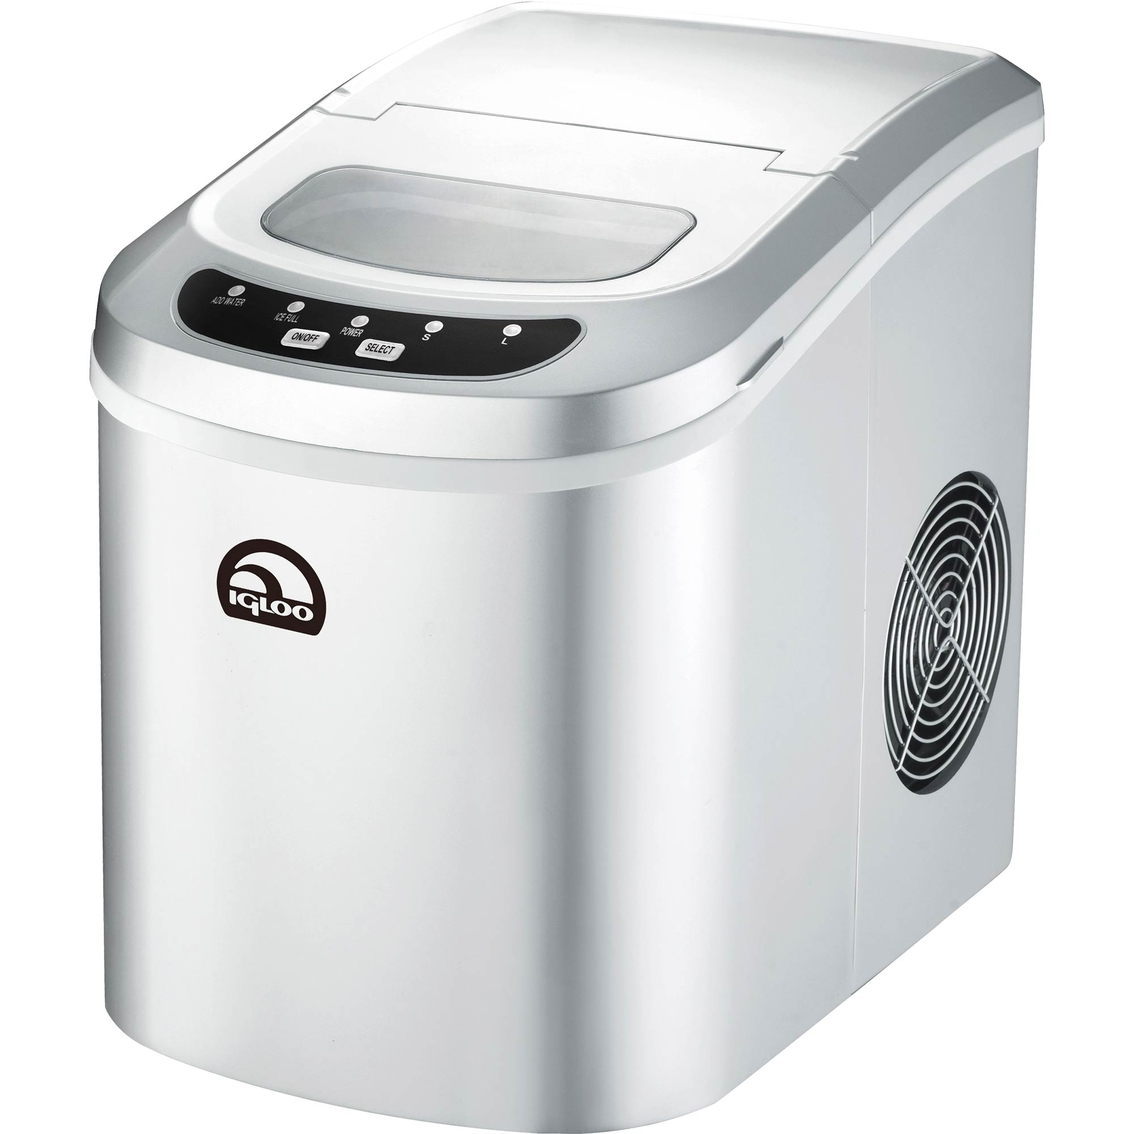 Igloo Countertop Icemaker 26 Lb. Silver Water Filtration/ice ...